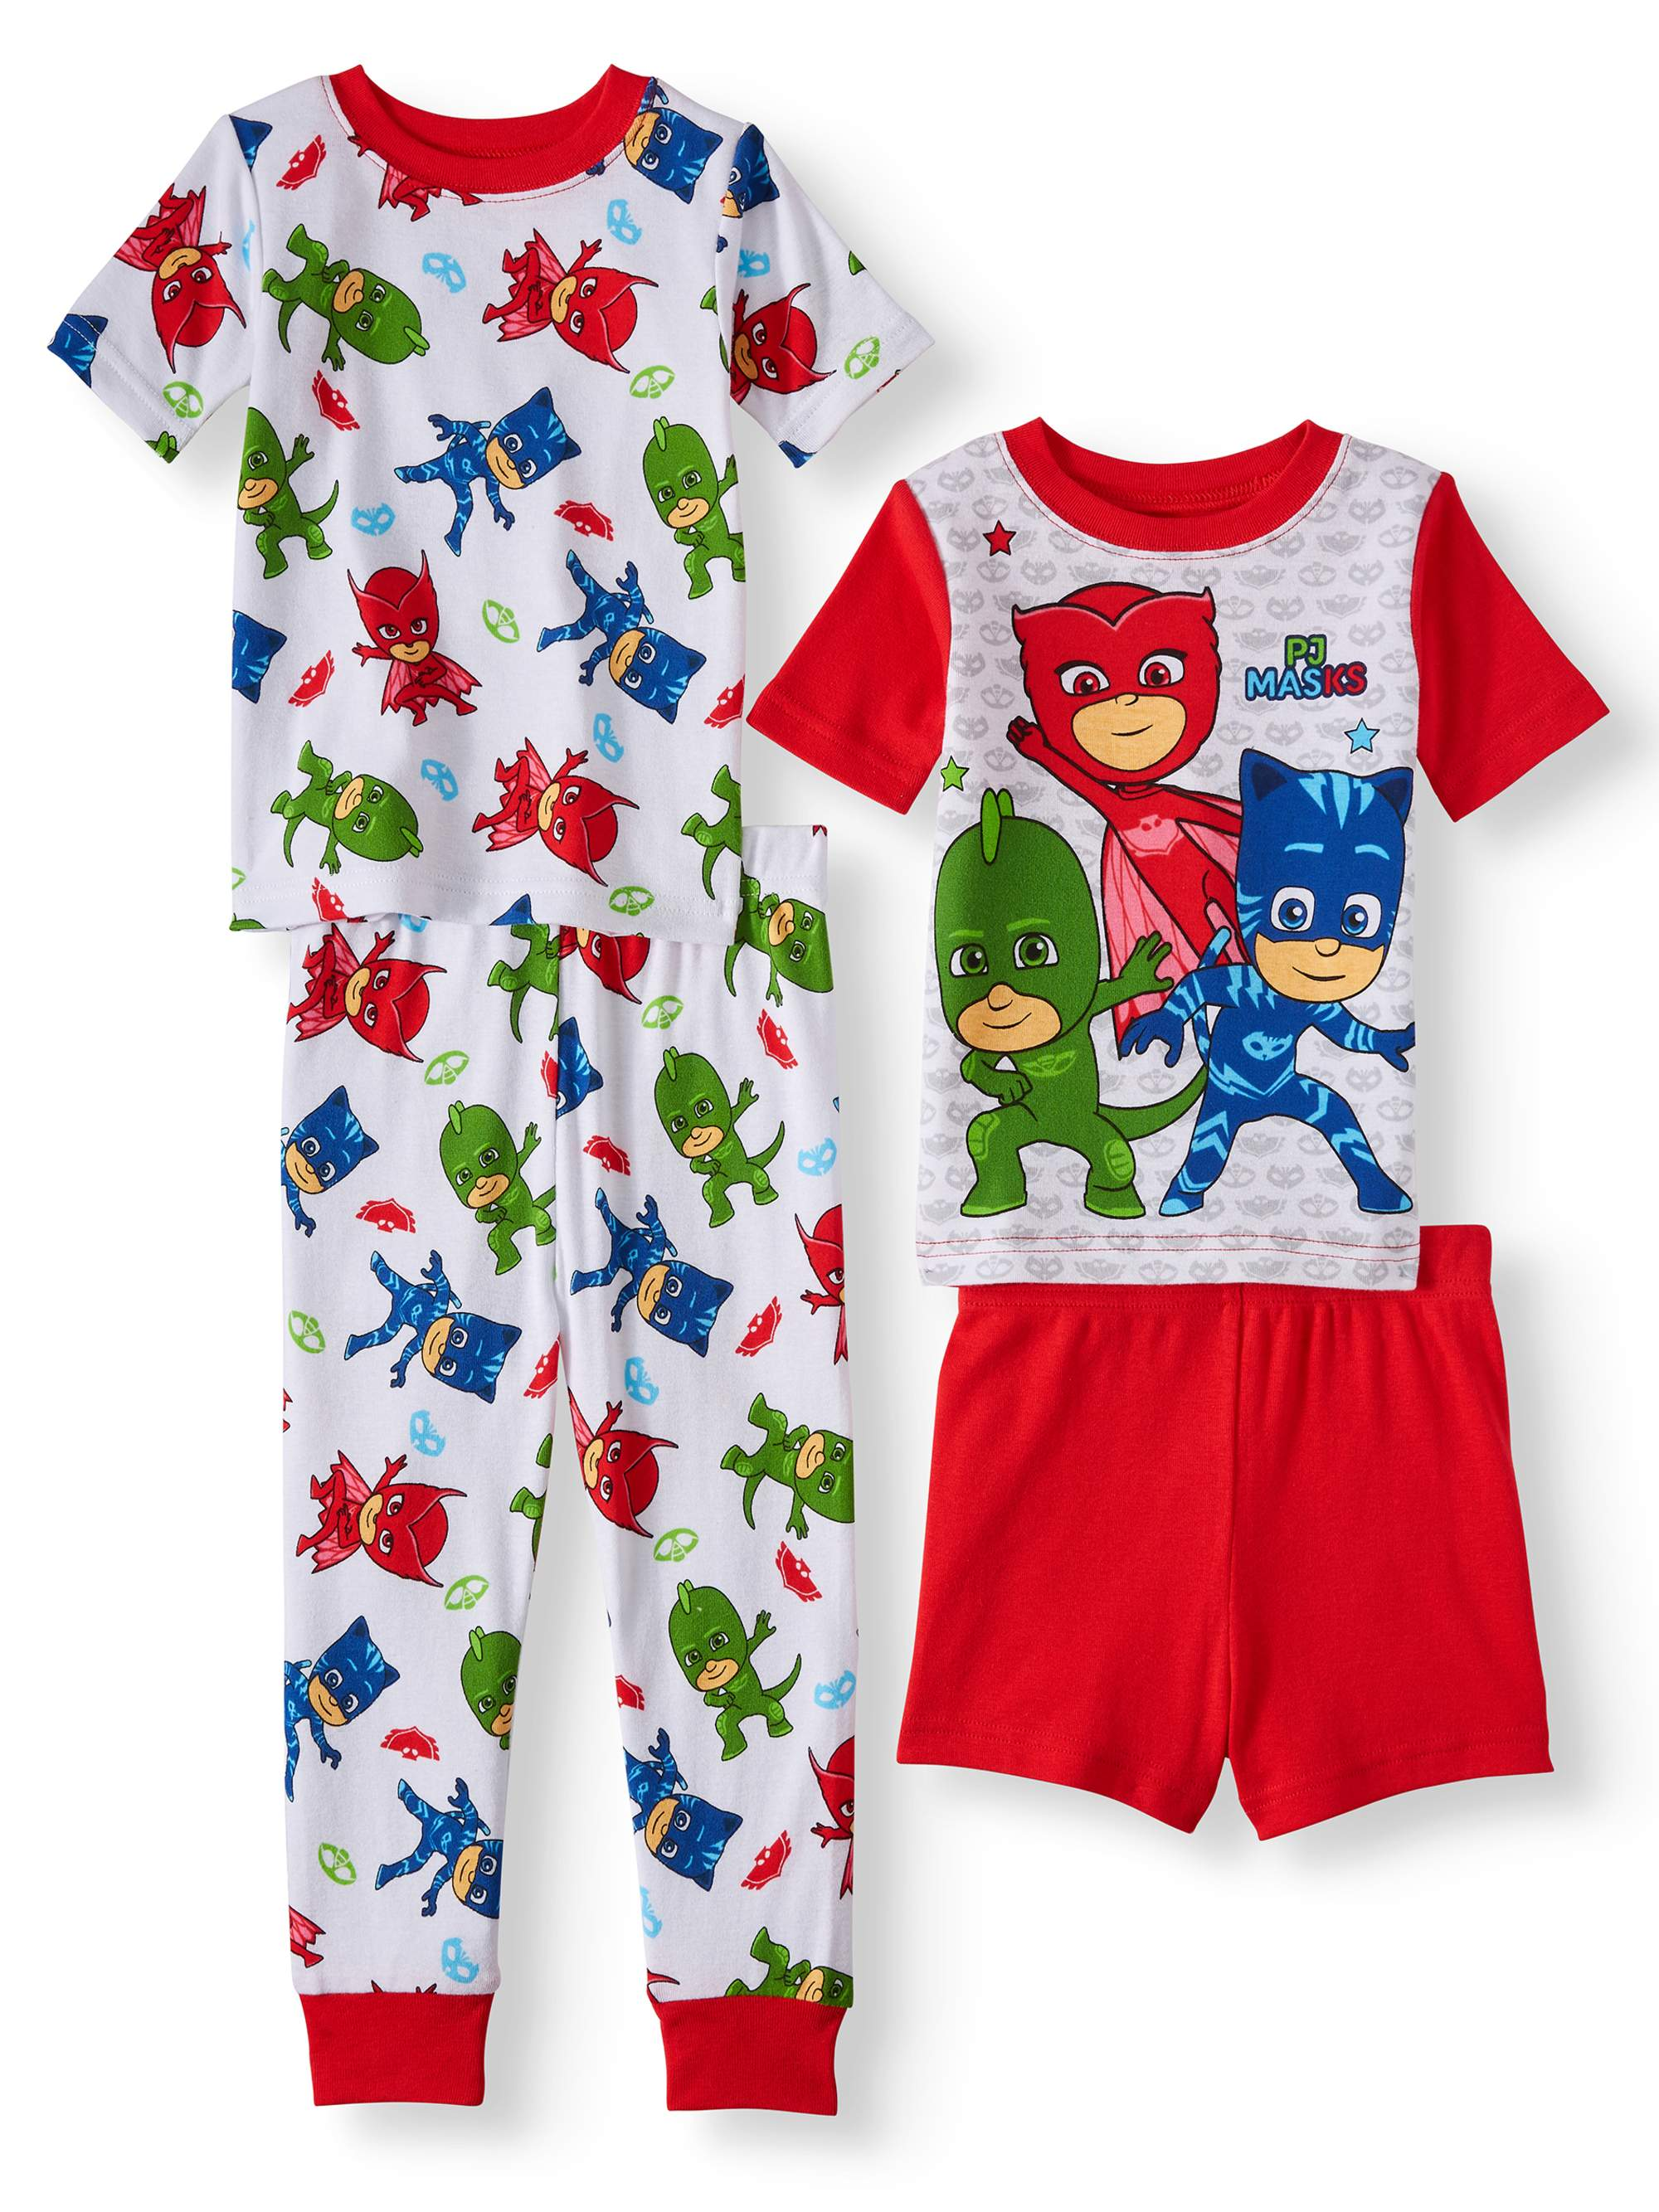 Toddler Boys' Cotton Tight Fit Pajamas, 4-Piece Set